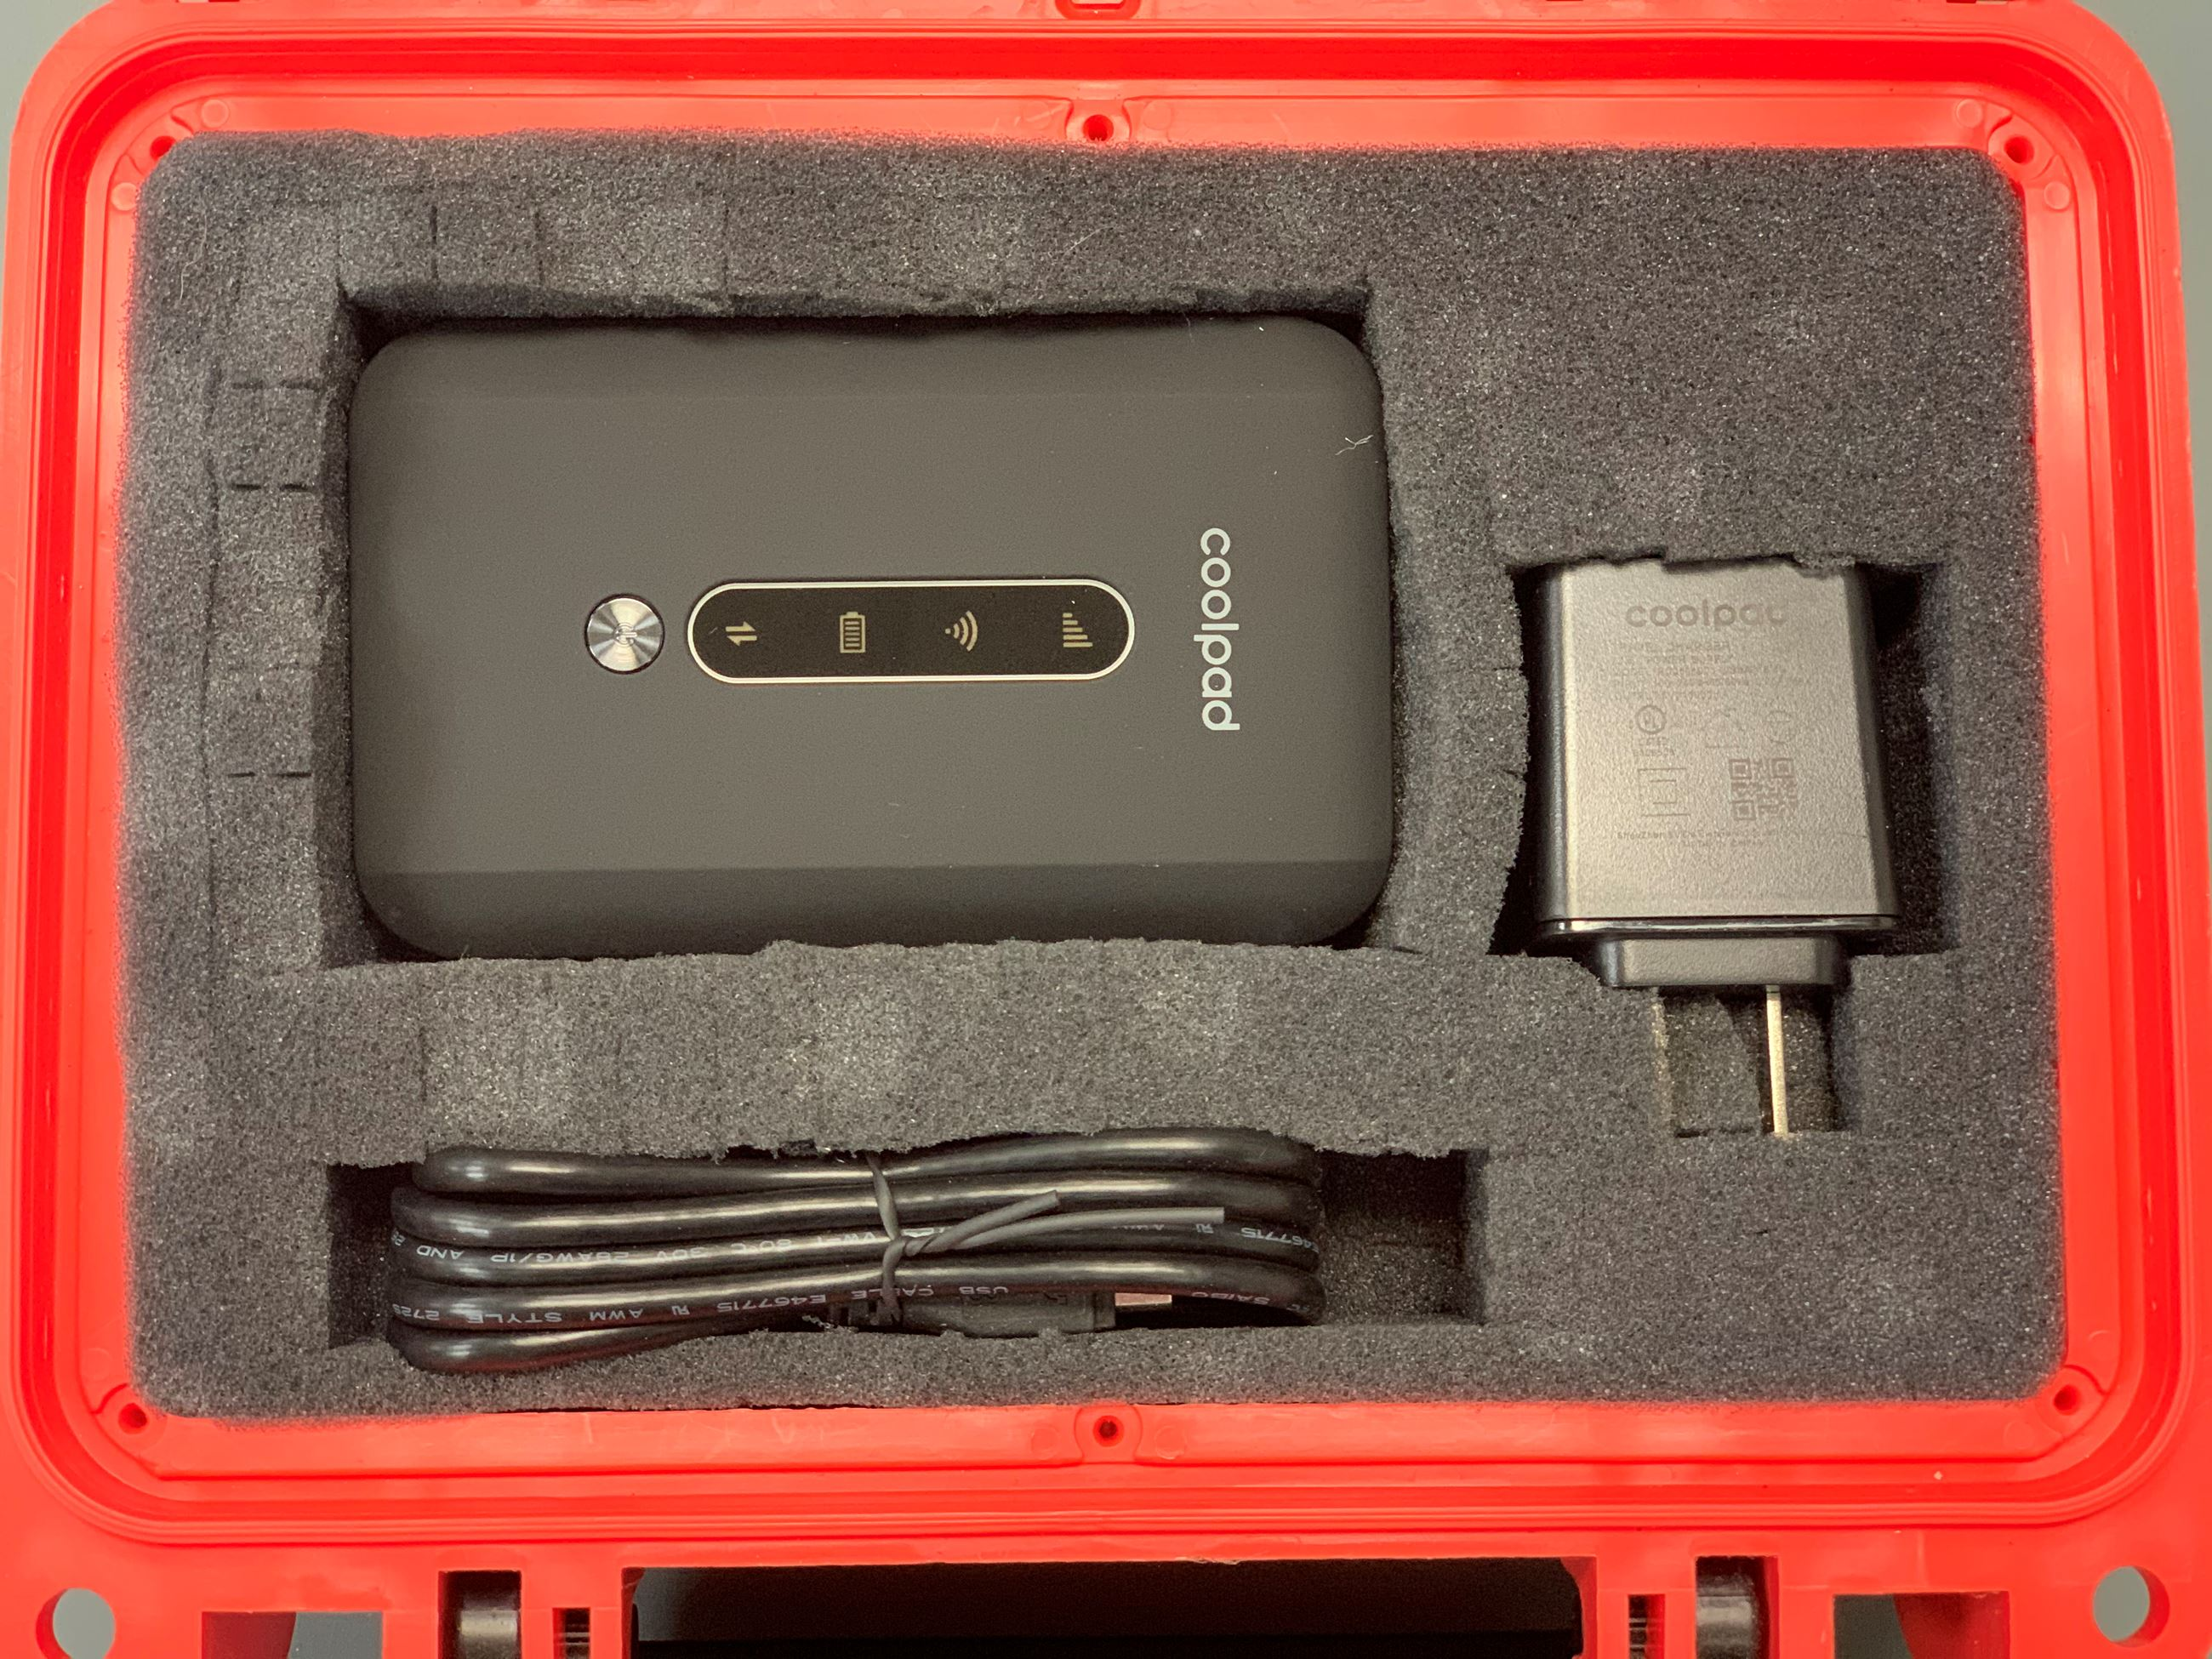 Mobile Beacon Hotspot in red case with charging cable